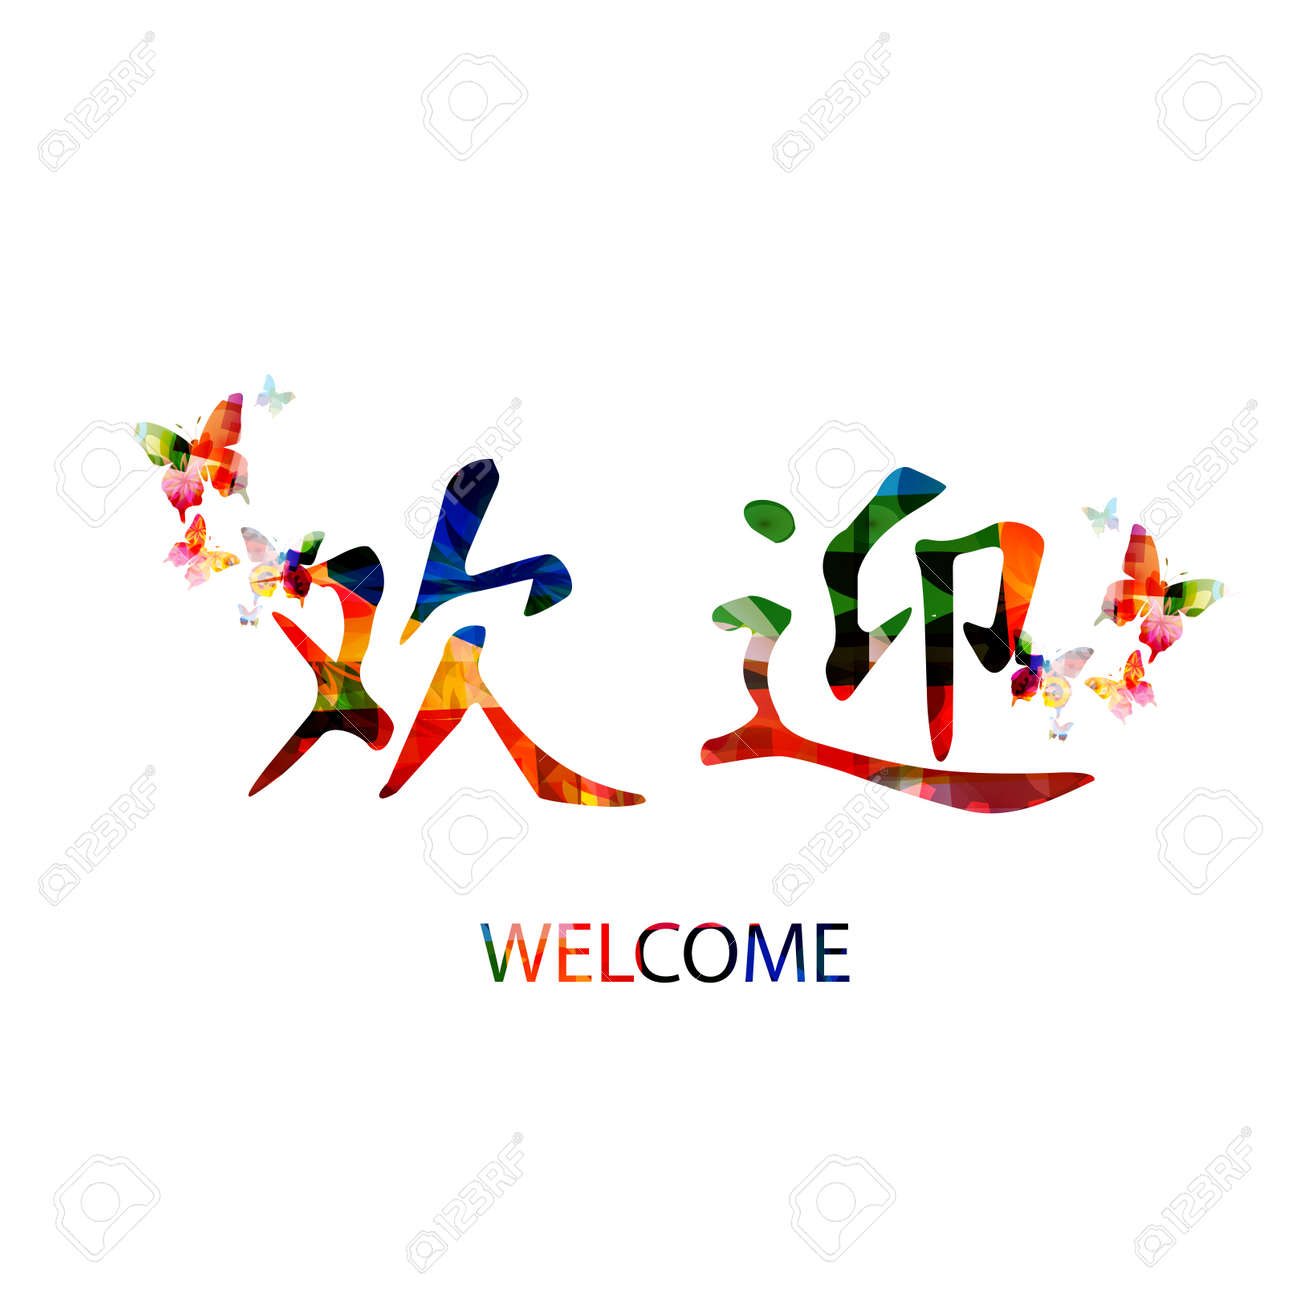 Chinese Symbols For Welcome Royalty Free Cliparts Vectors And